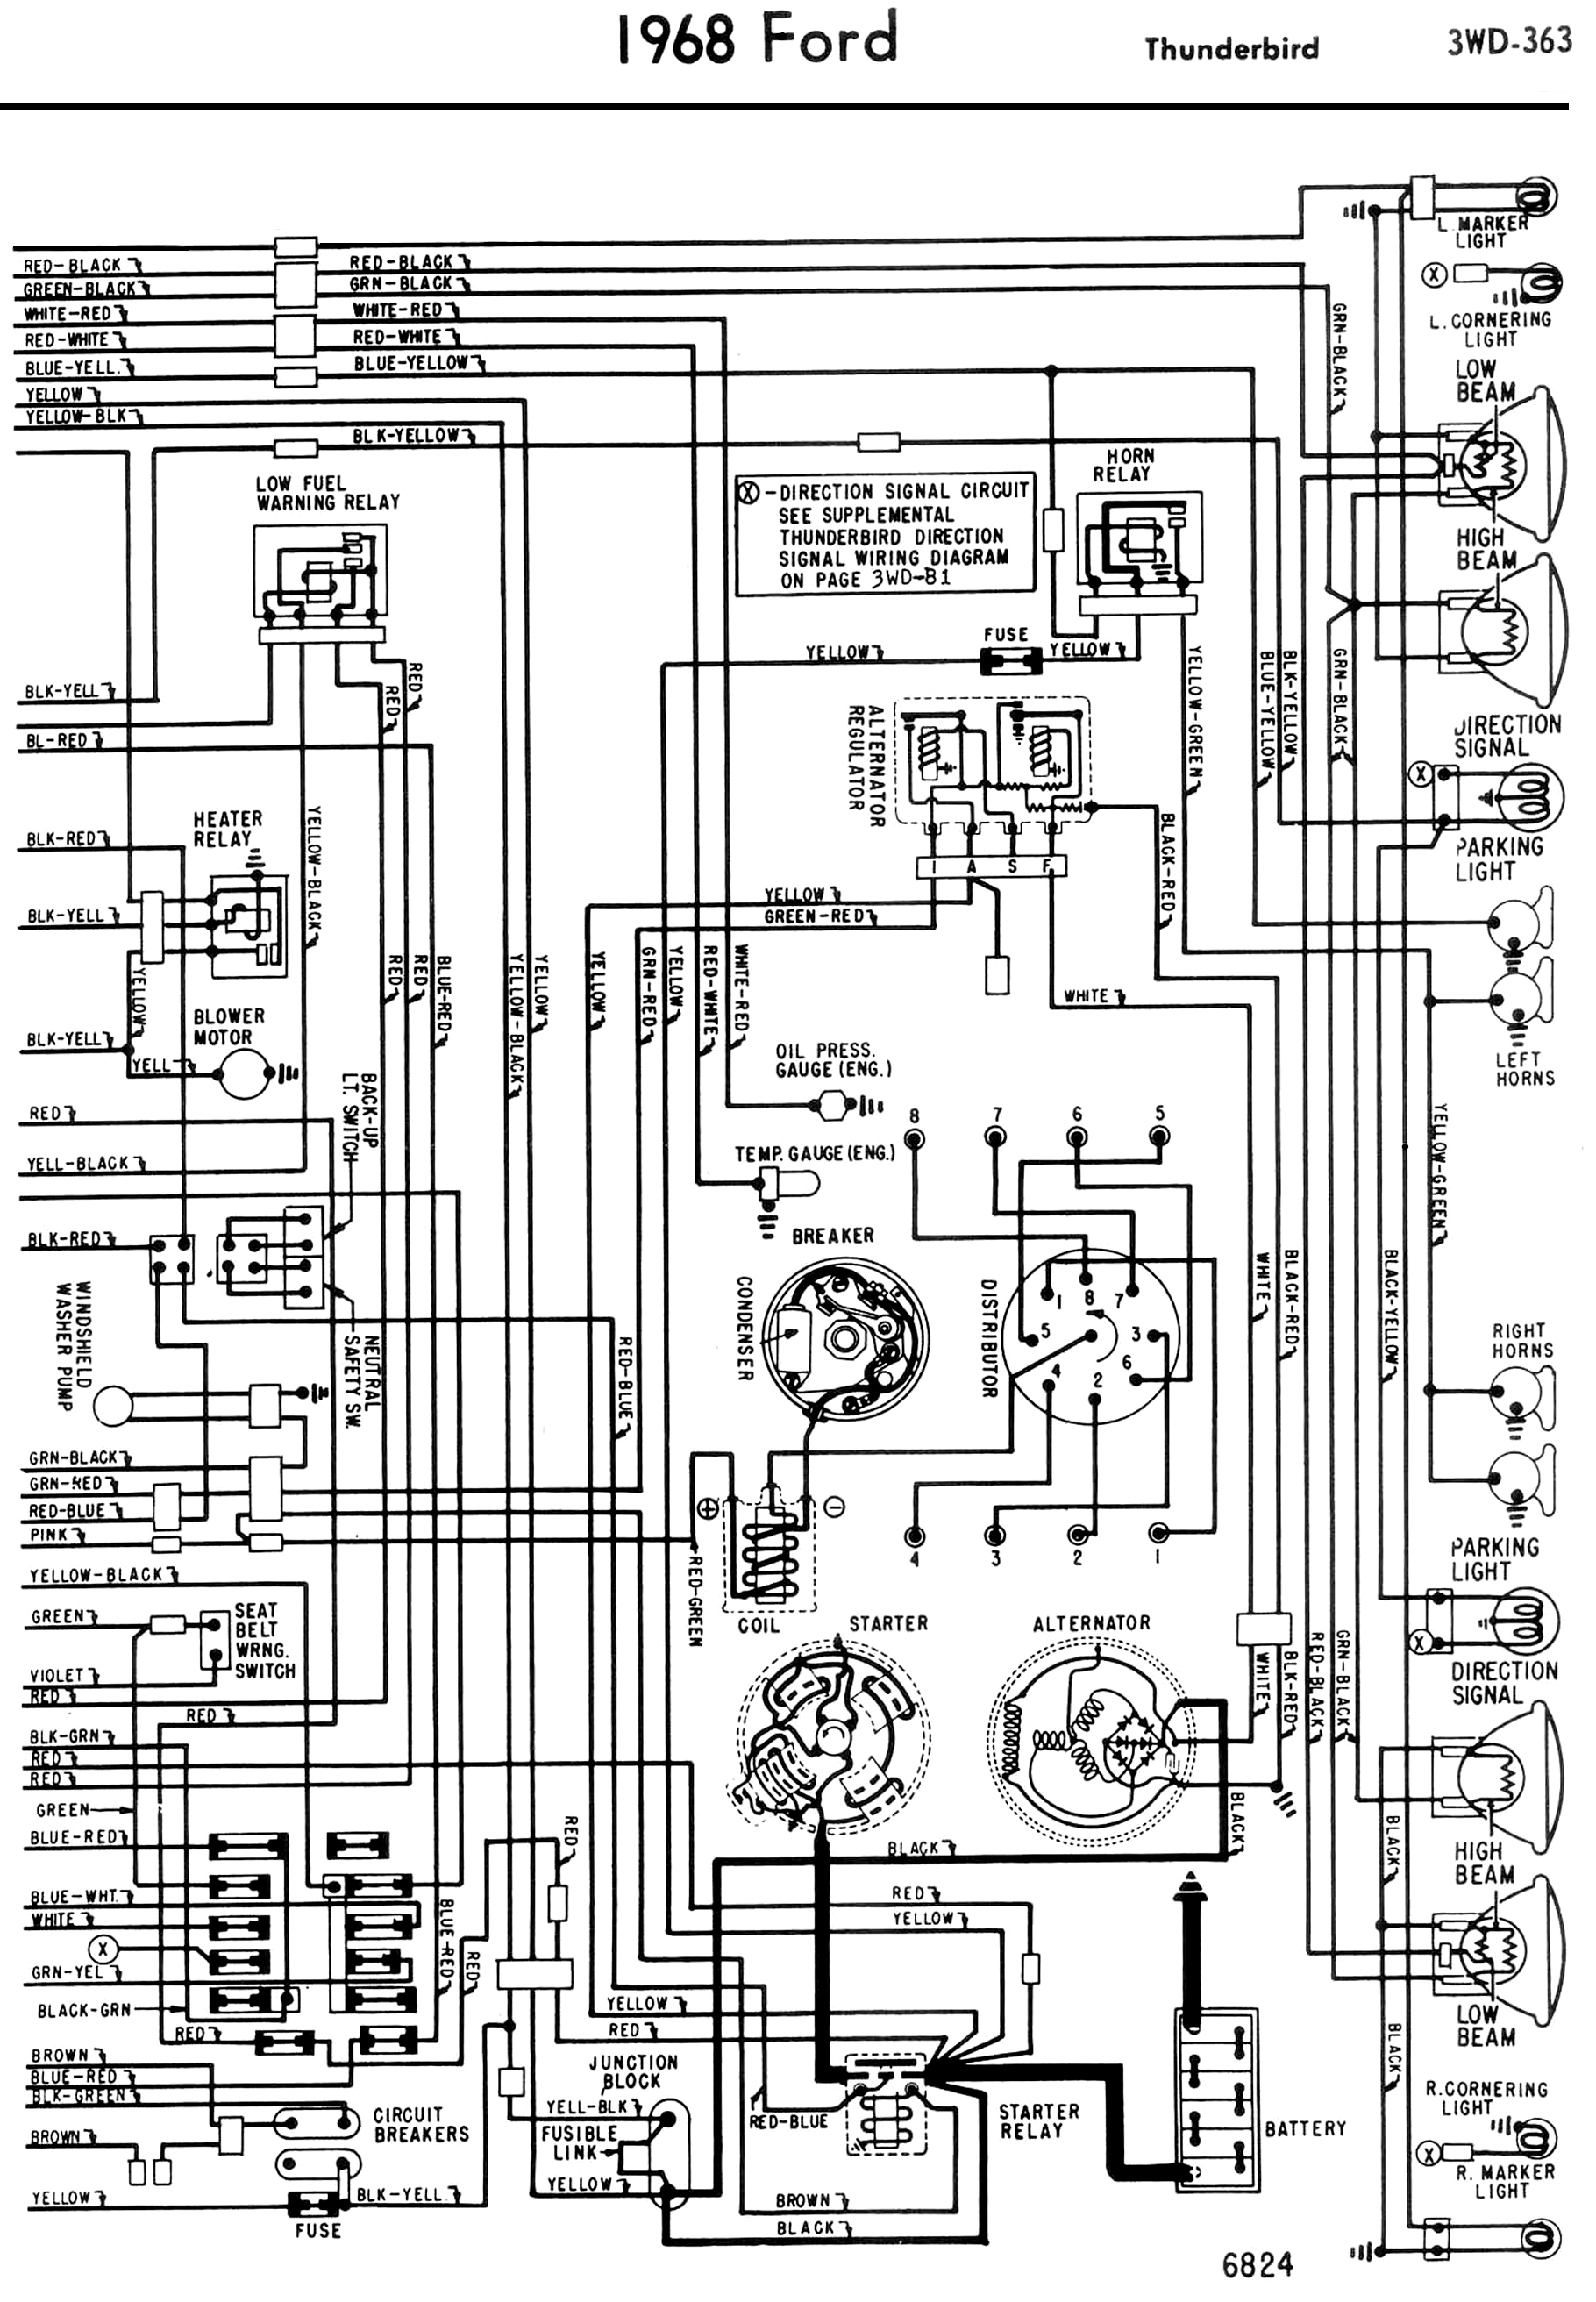 1962 Ford Radio Wiring Diagram Library 1960 Impala 1958 68 Electrical Schematics Thunderbird Generator Light For 2003